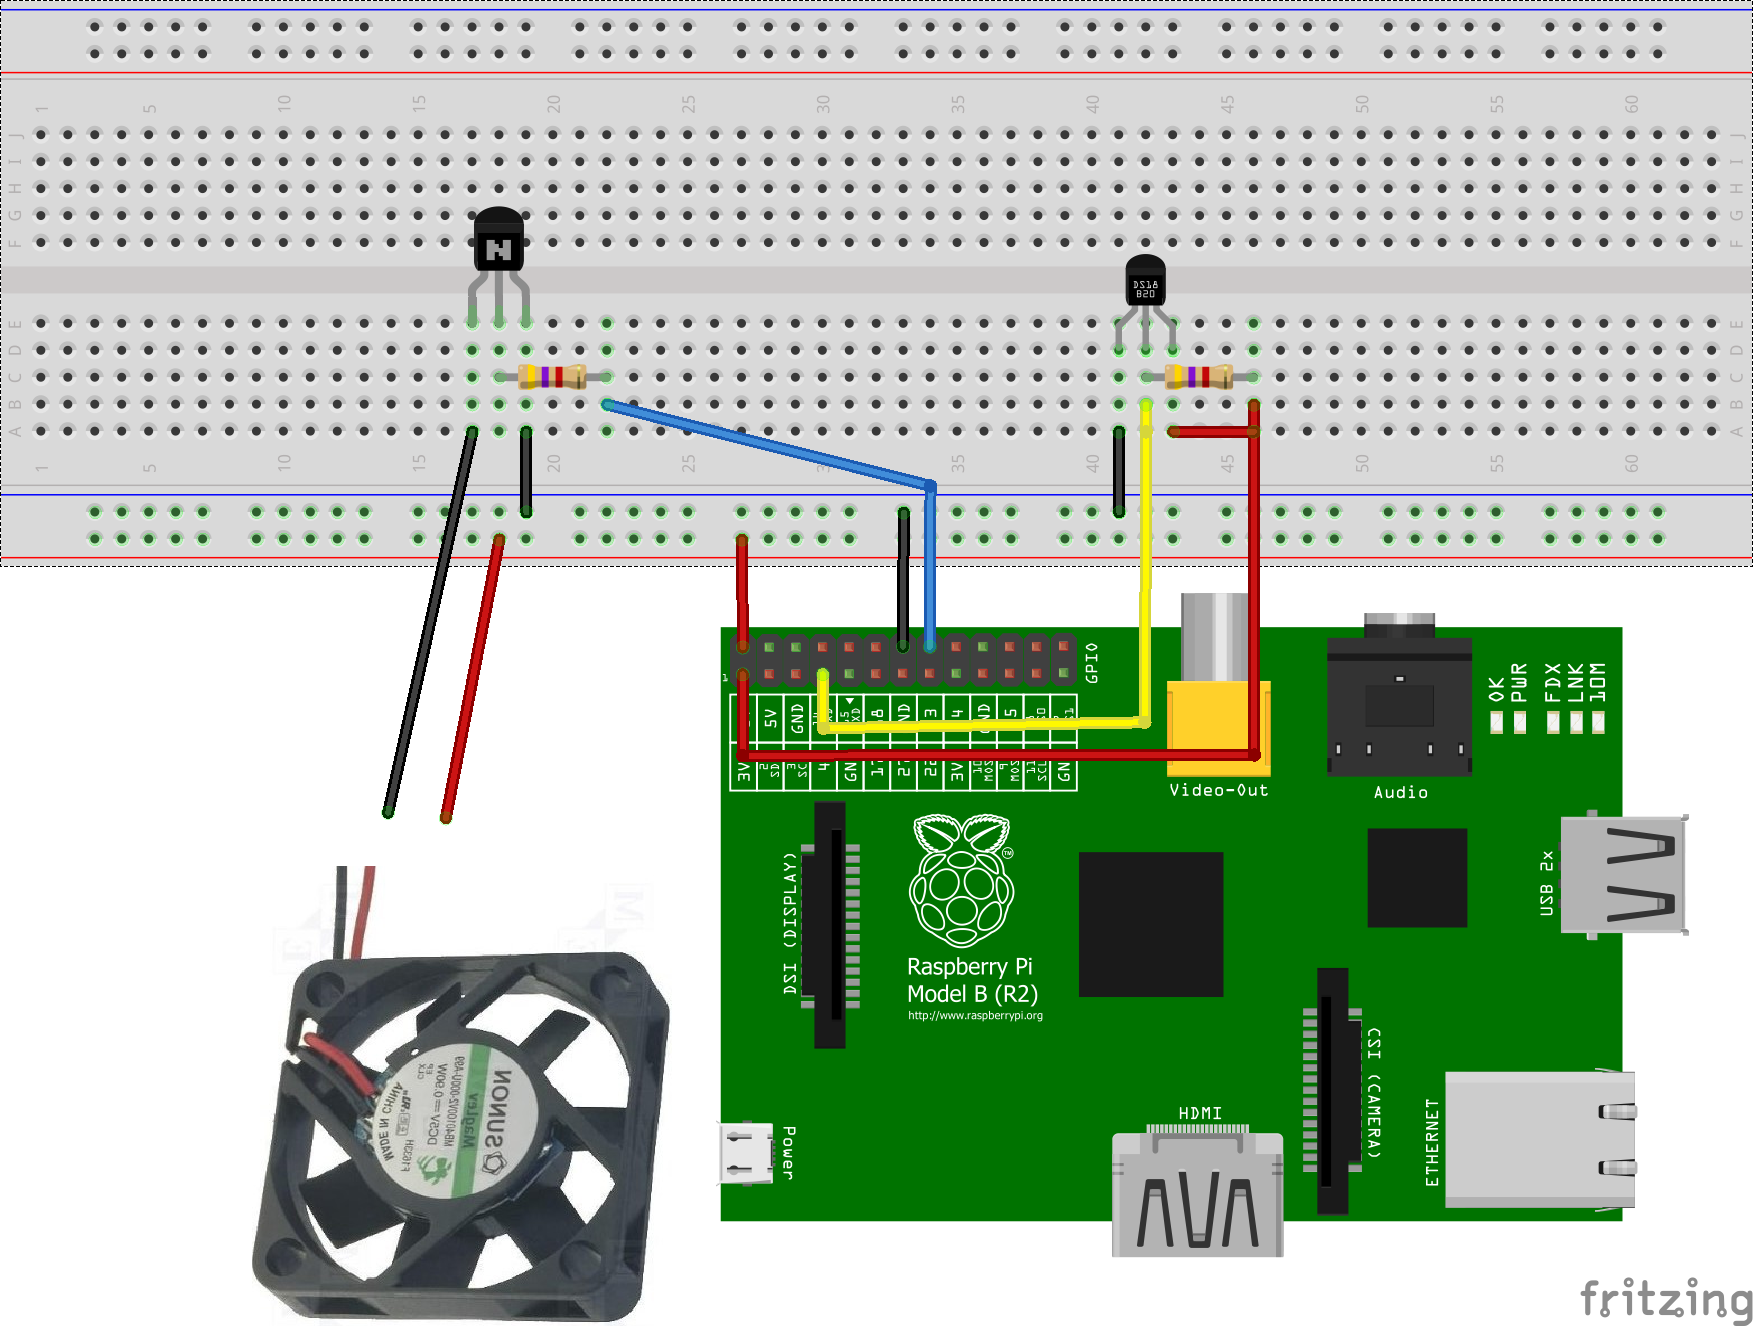 Fan control for better Overclocking of the Raspberry Pi